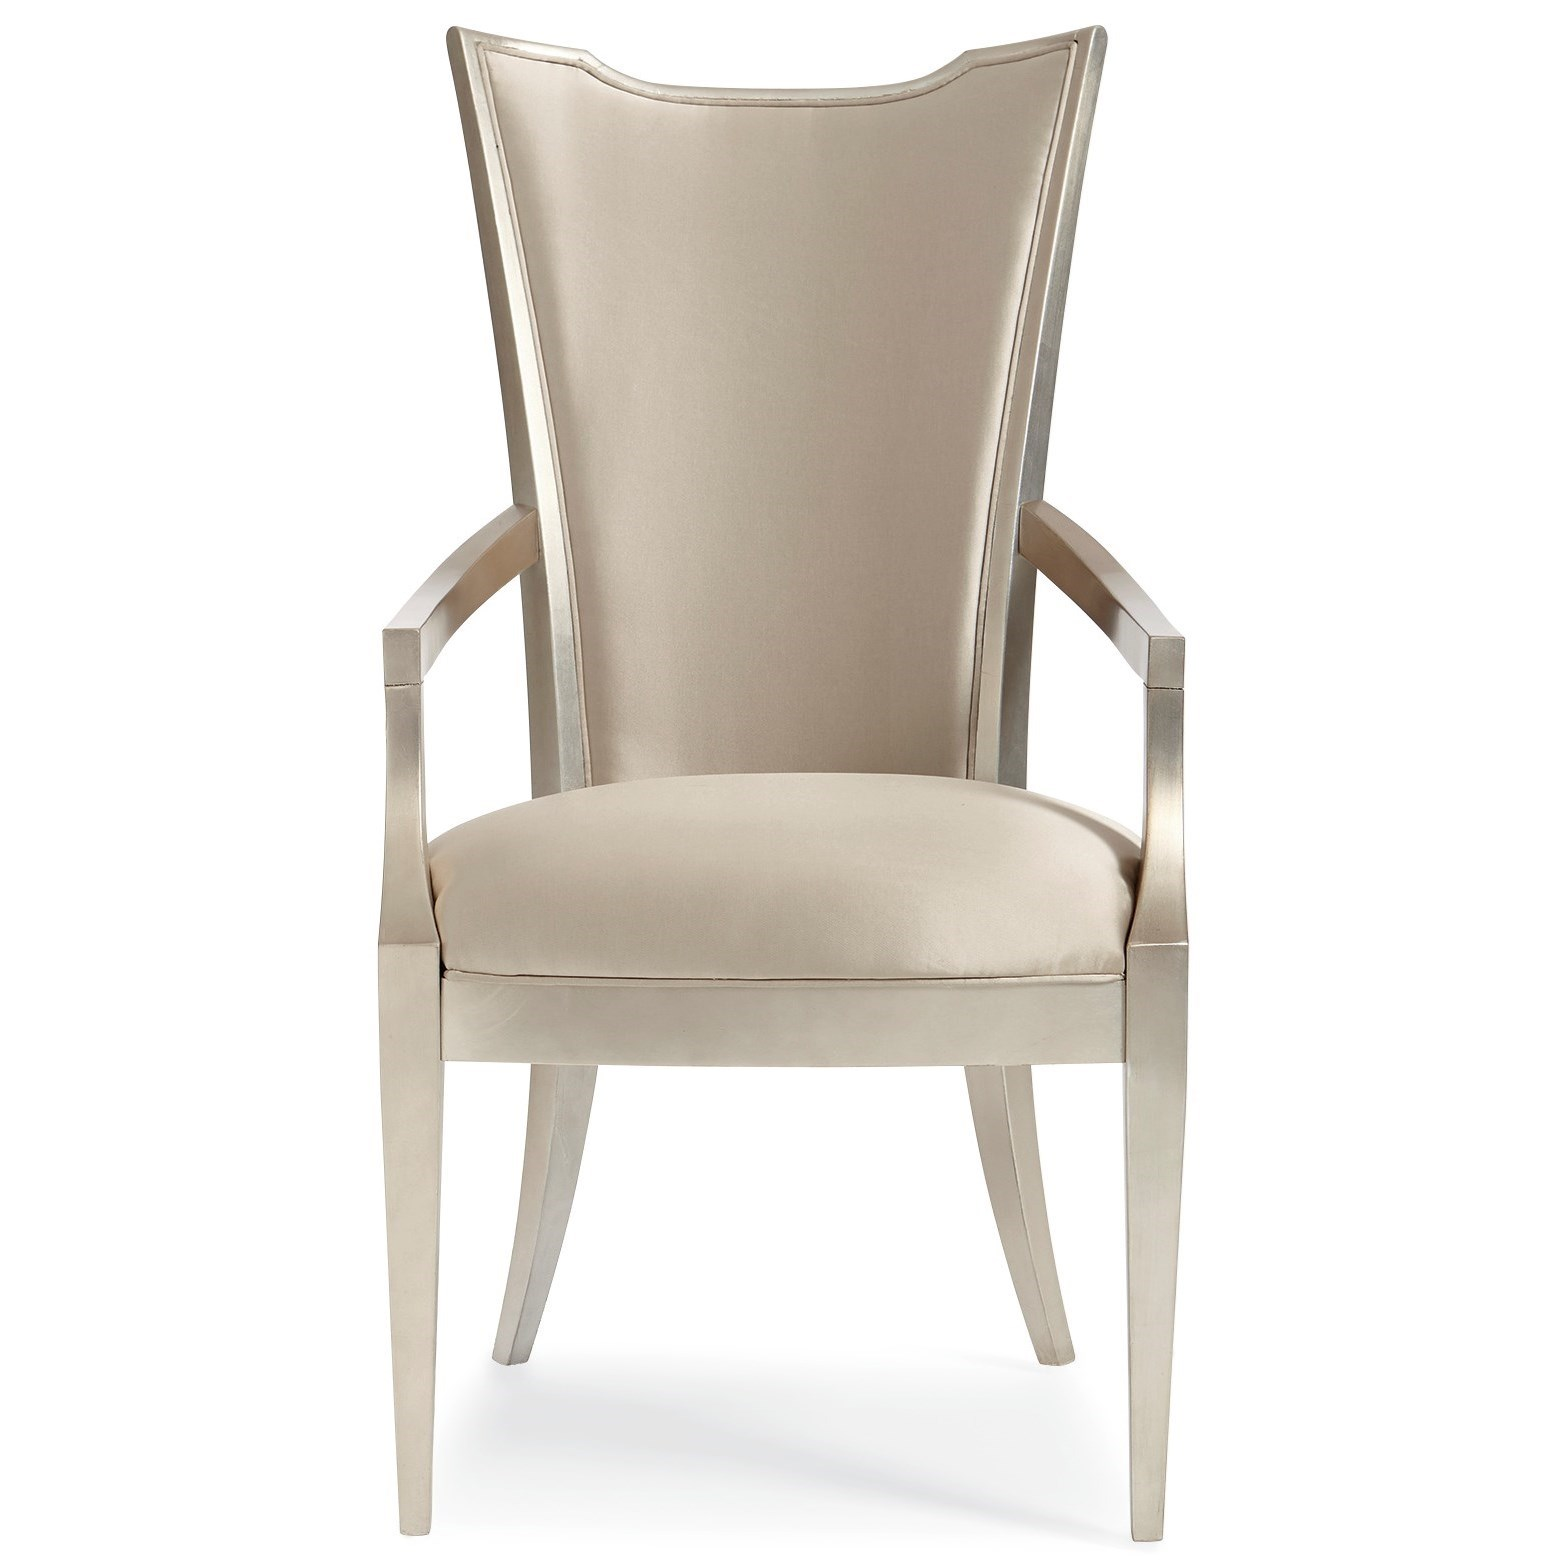 Very Appealing Dining Arm Chair